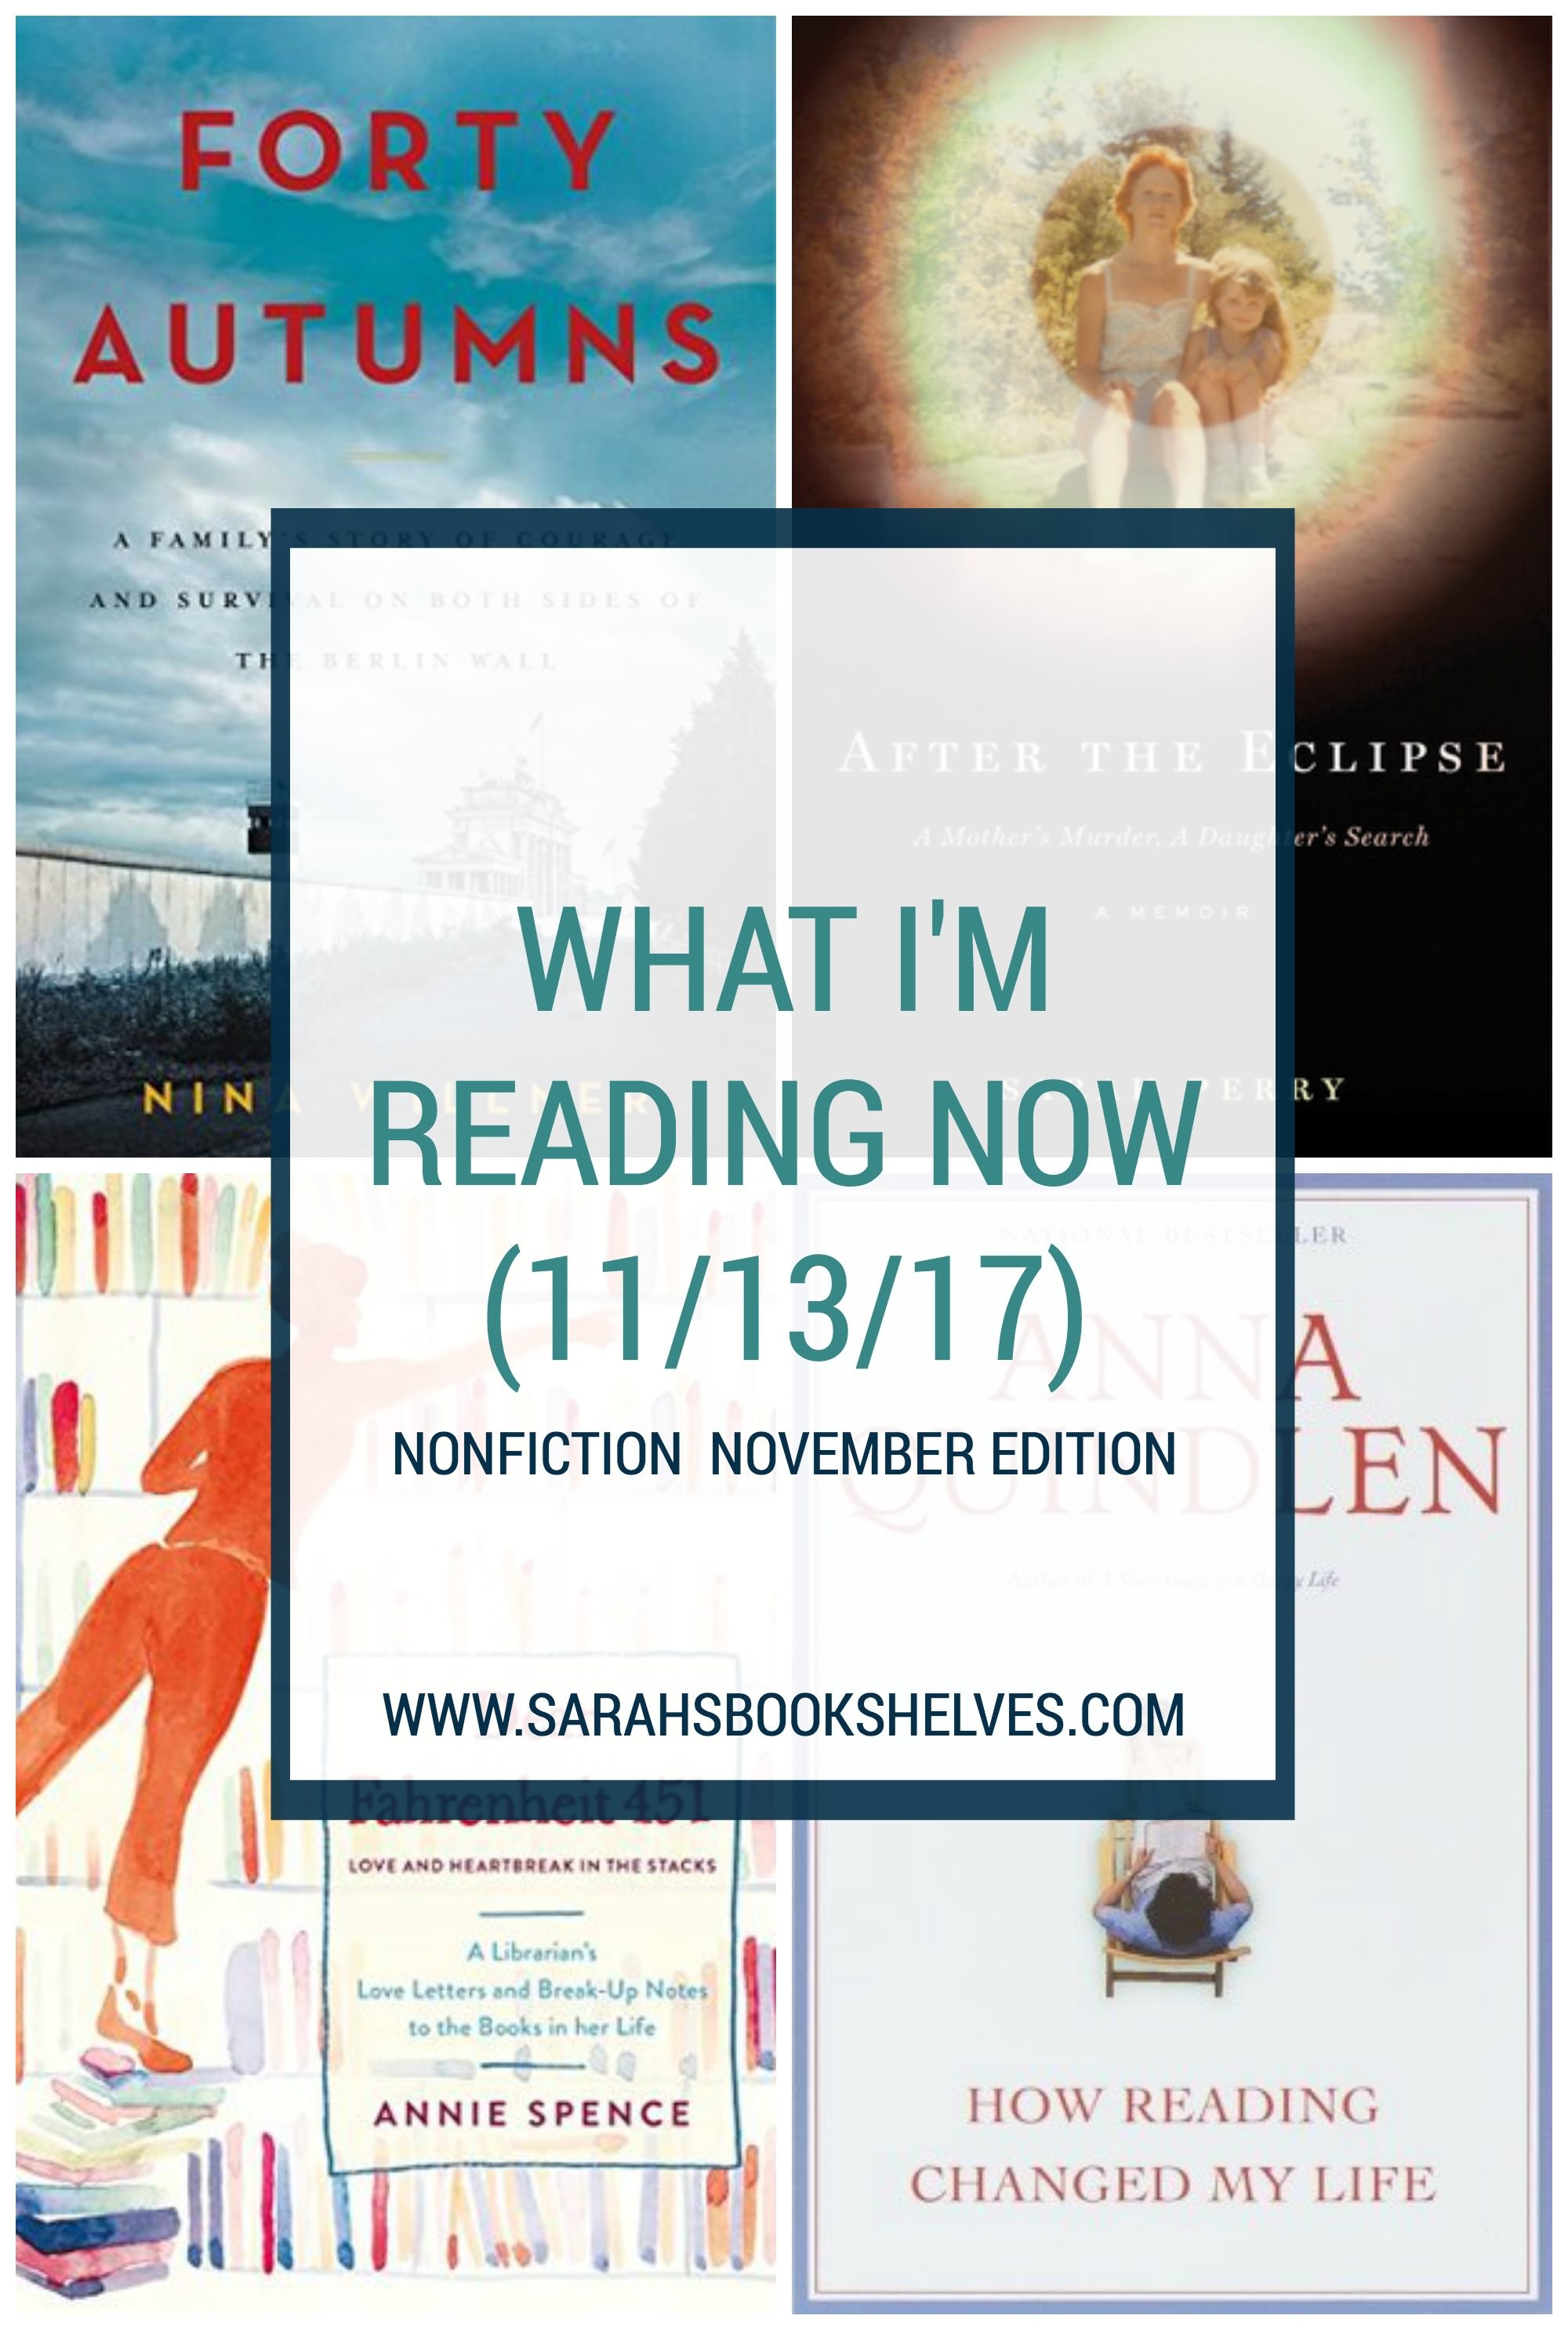 What I'm Reading Now (11/13/17): I'm reading all nonfiction for #nonficnov...on Cold War era East Germany, true crime, and books and reading. #reading #book #bookish #bookworms #booklovers #booklist #readinglist